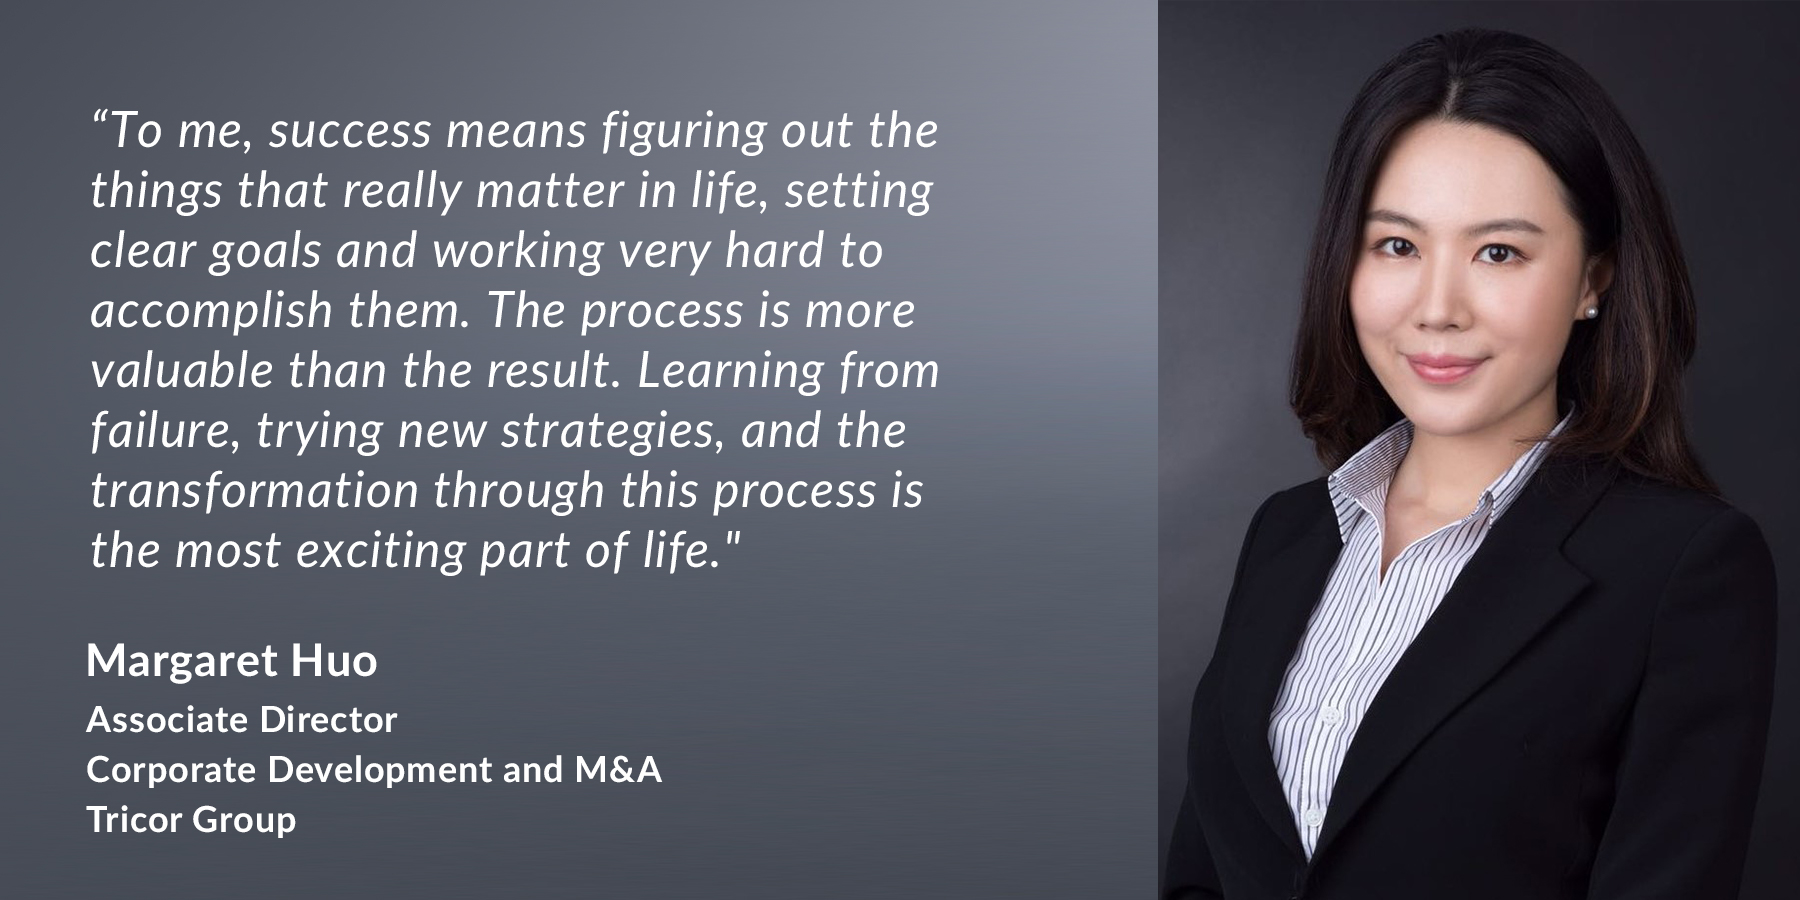 Margaret Huo - Associate Director of Corporate Development and M&A, Tricor Group